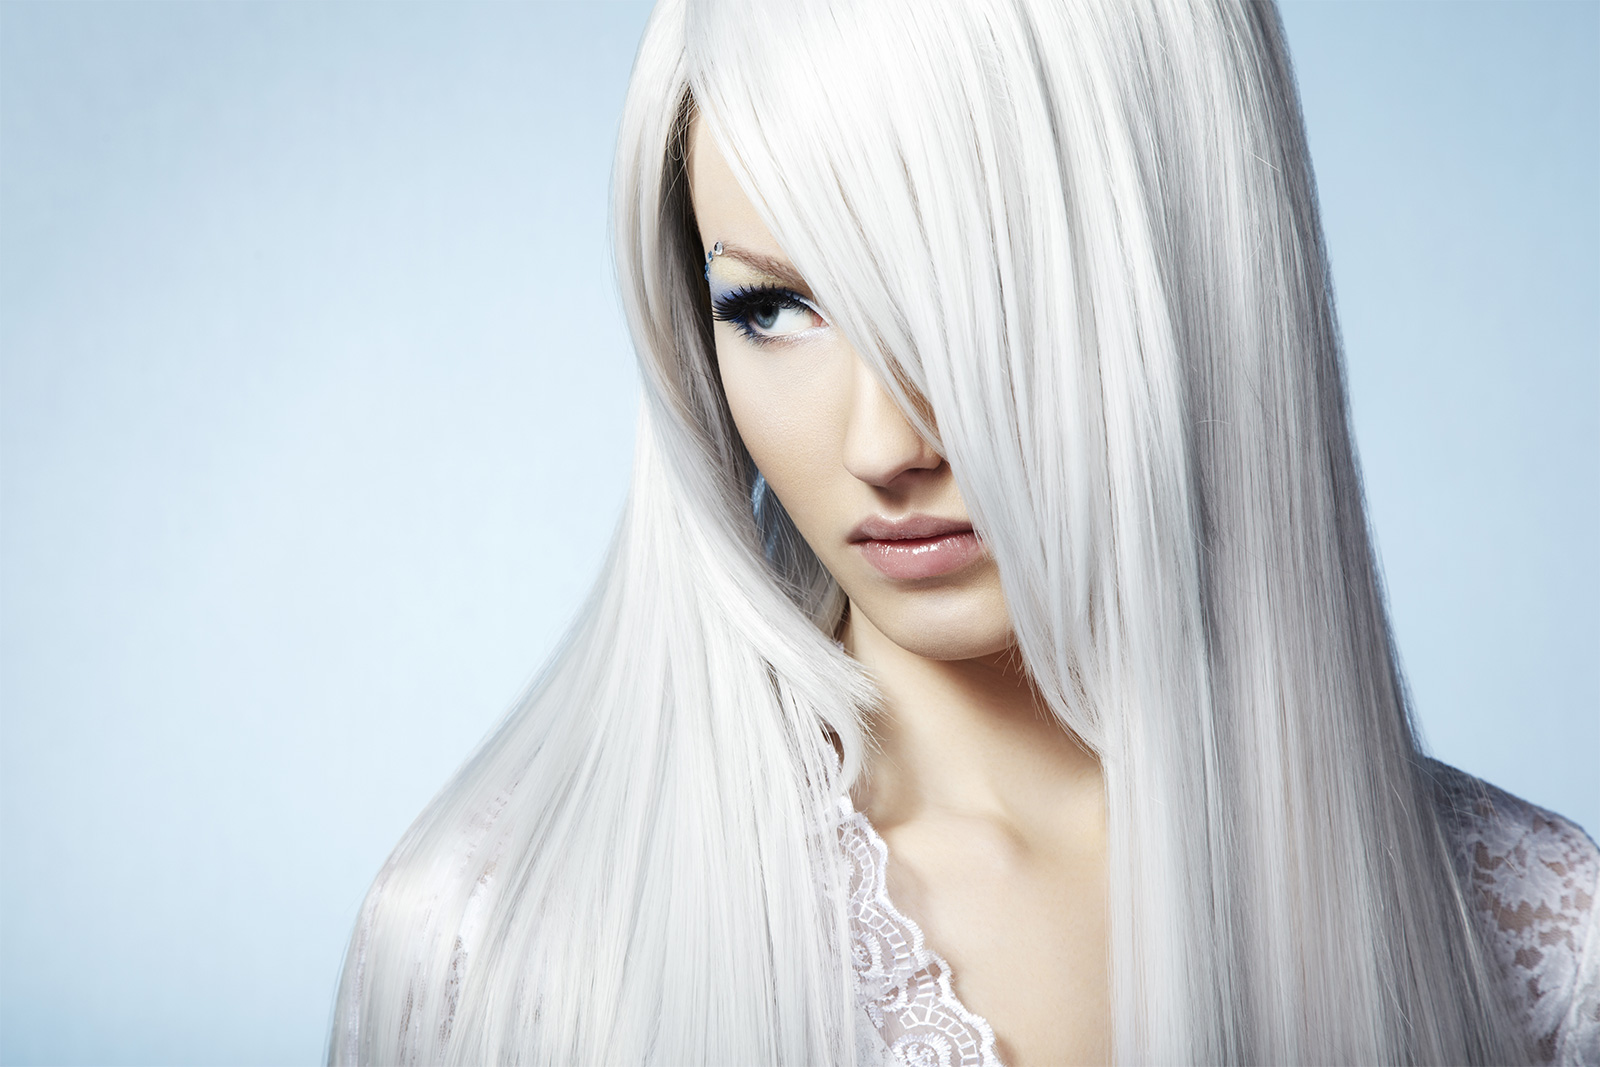 Jelz-Straight-Salon-Hair-Fashion-Chicago-Schaumburg-Straightening-Japanese-Make-Up-Thermal-Conditioning